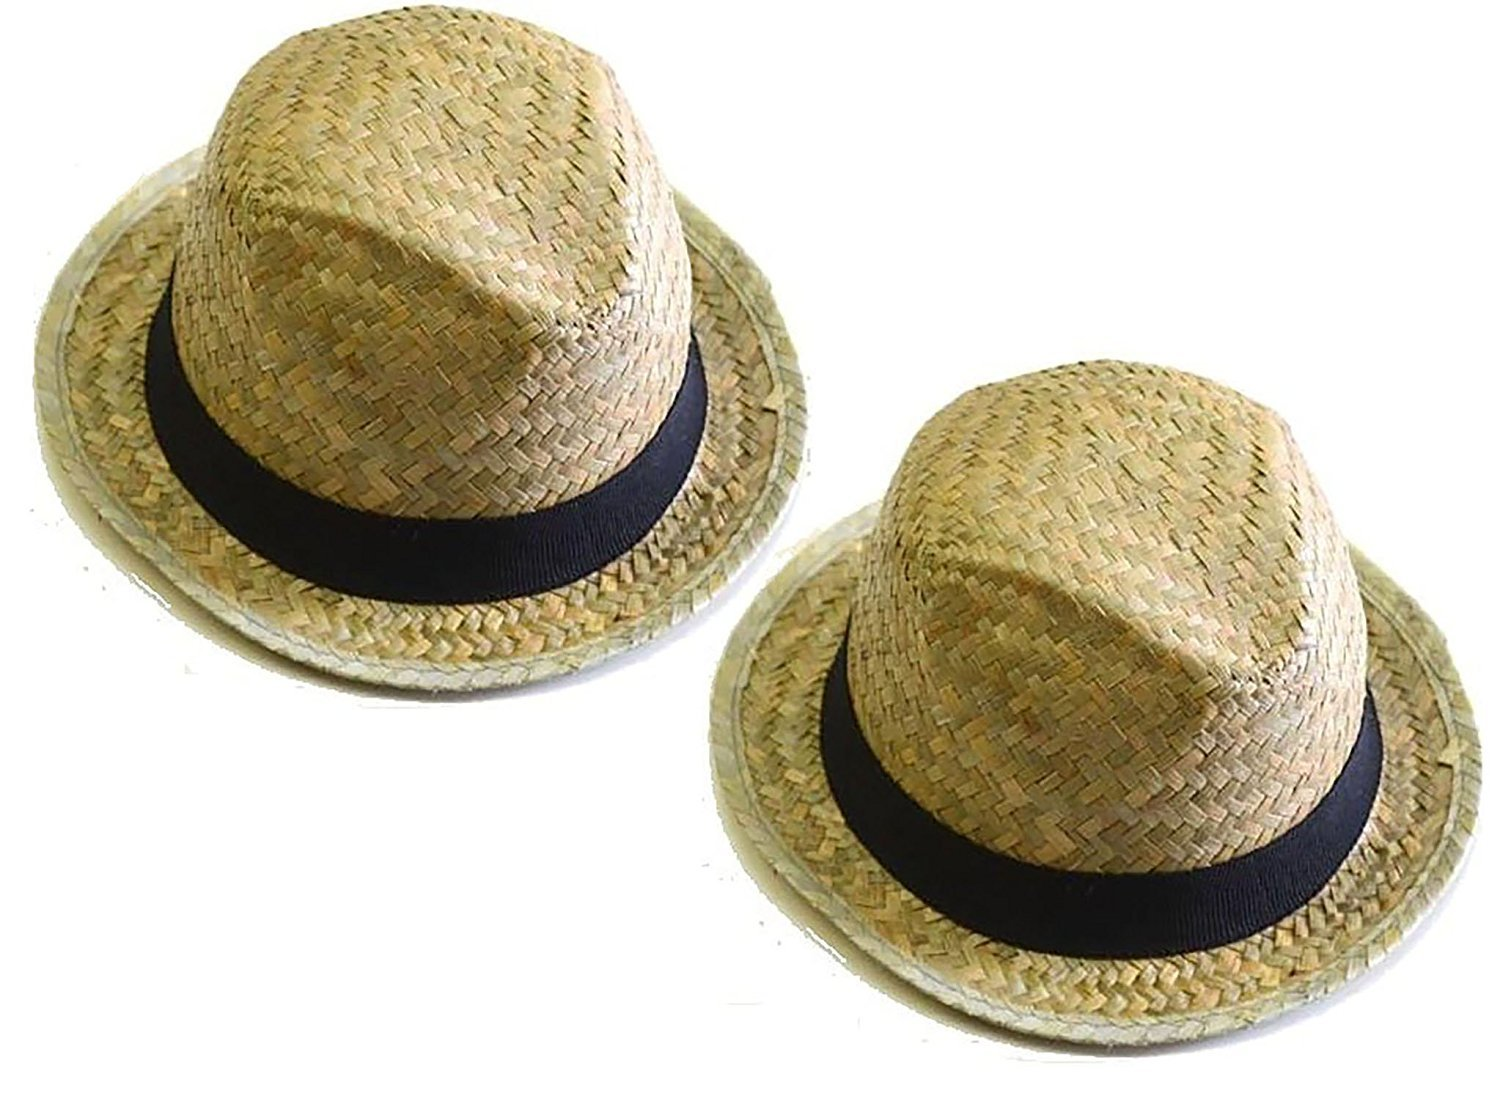 Bottles N Bags 2 Pack Fedora Straw Hats Cuban Style with Black Fabric Band Perfect for Cruises by